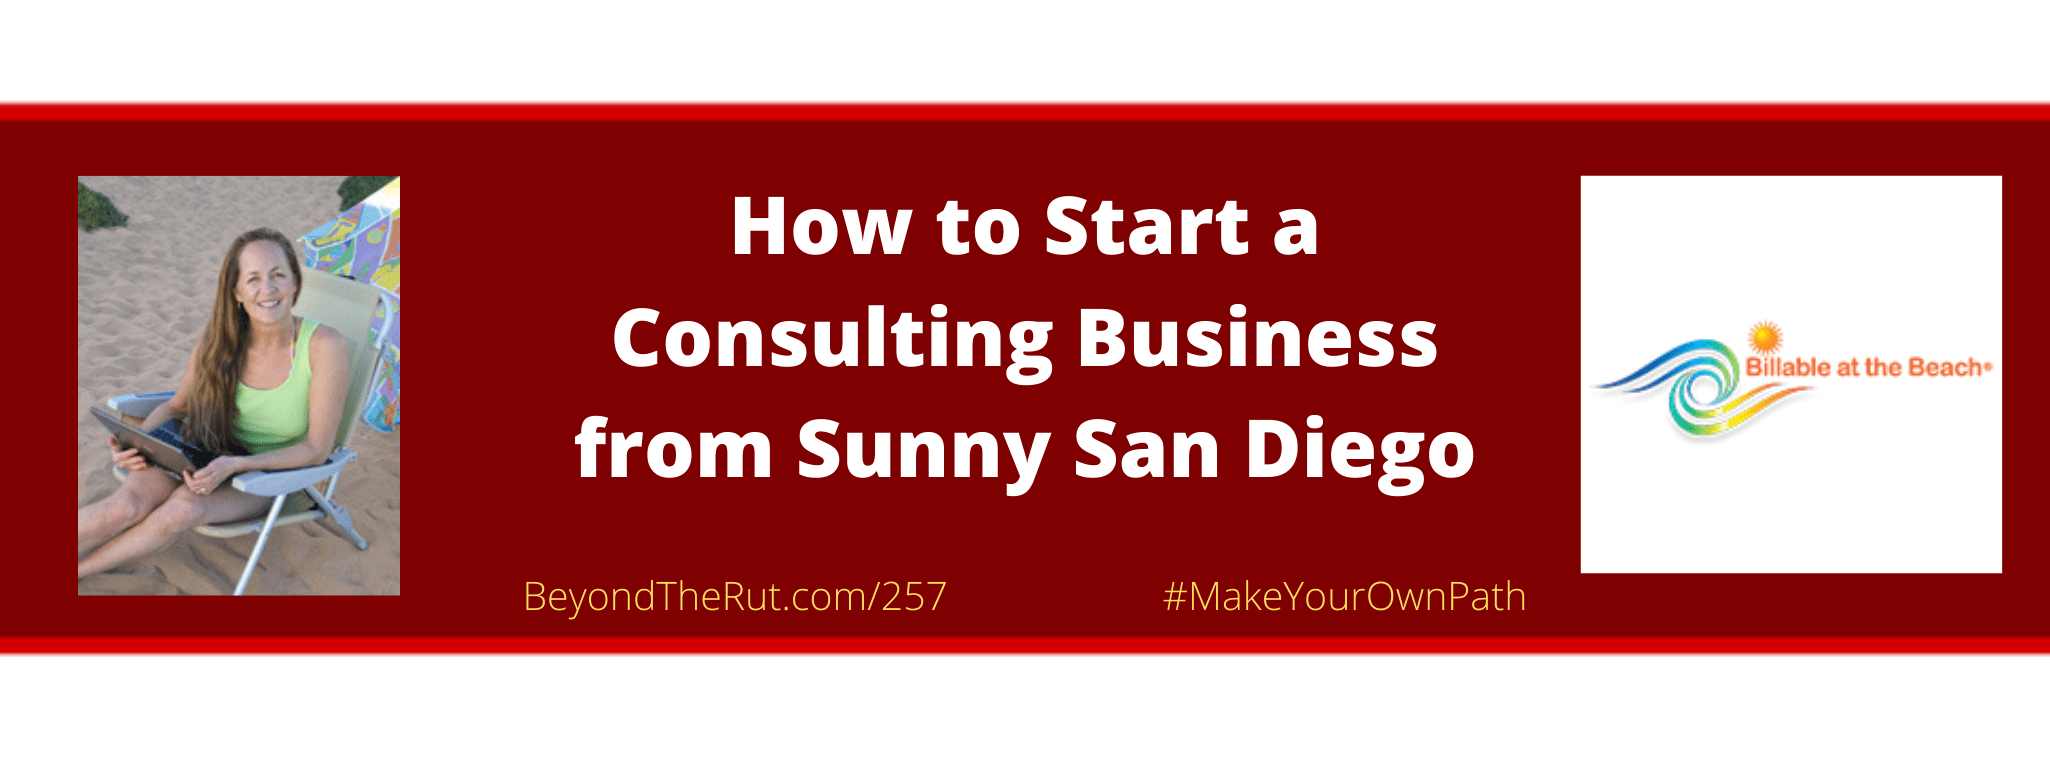 BtR 257 Amy Rasdal How to Start a Consulting Business